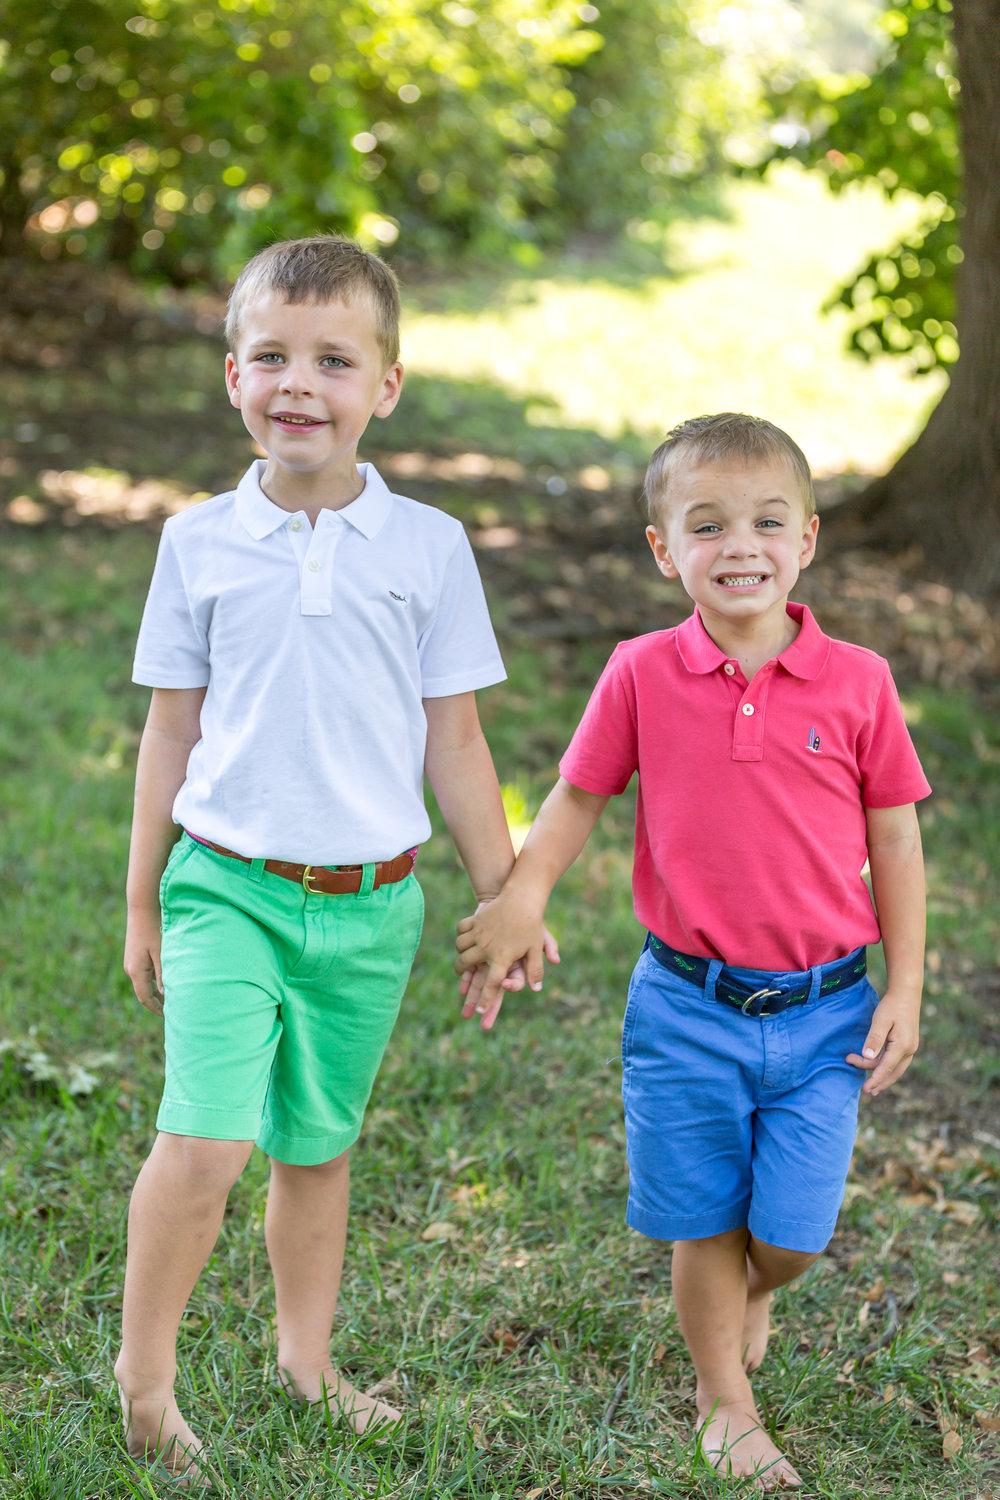 Brothers in Kansas City holding hands at Loose Park during family photo shoot with big smiles